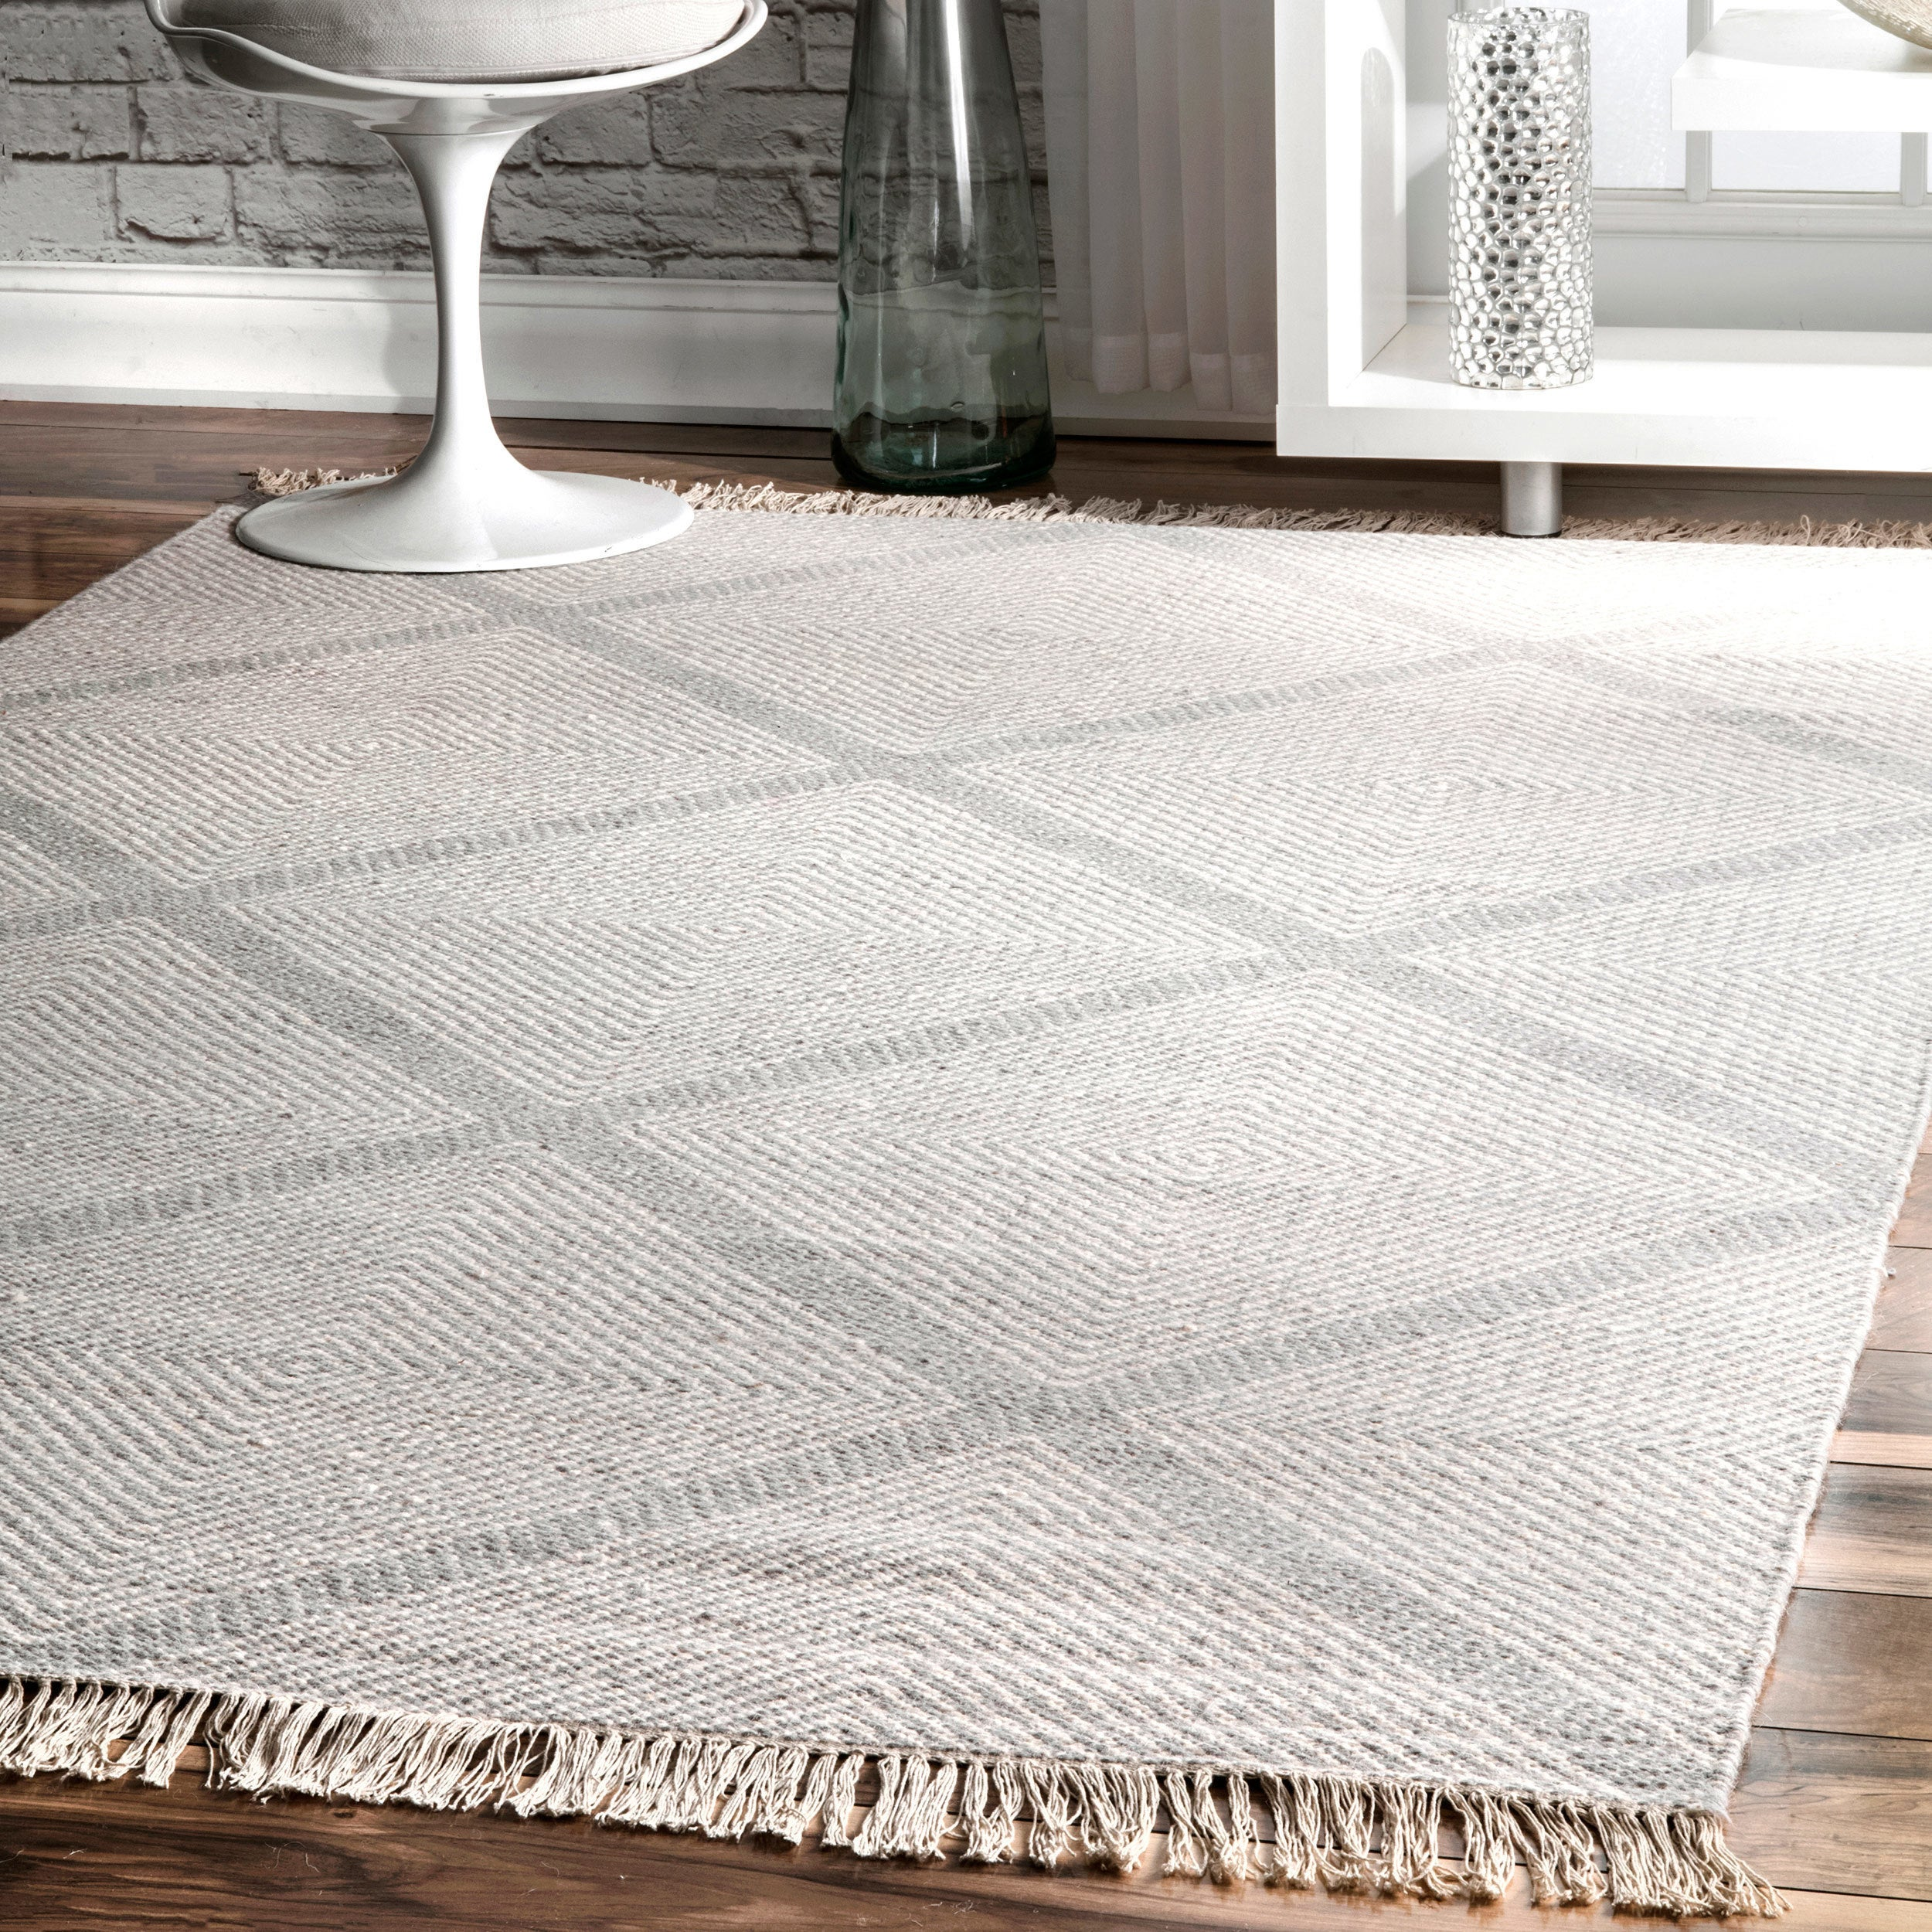 Nuloom Ivory Diamond Trellis Wool